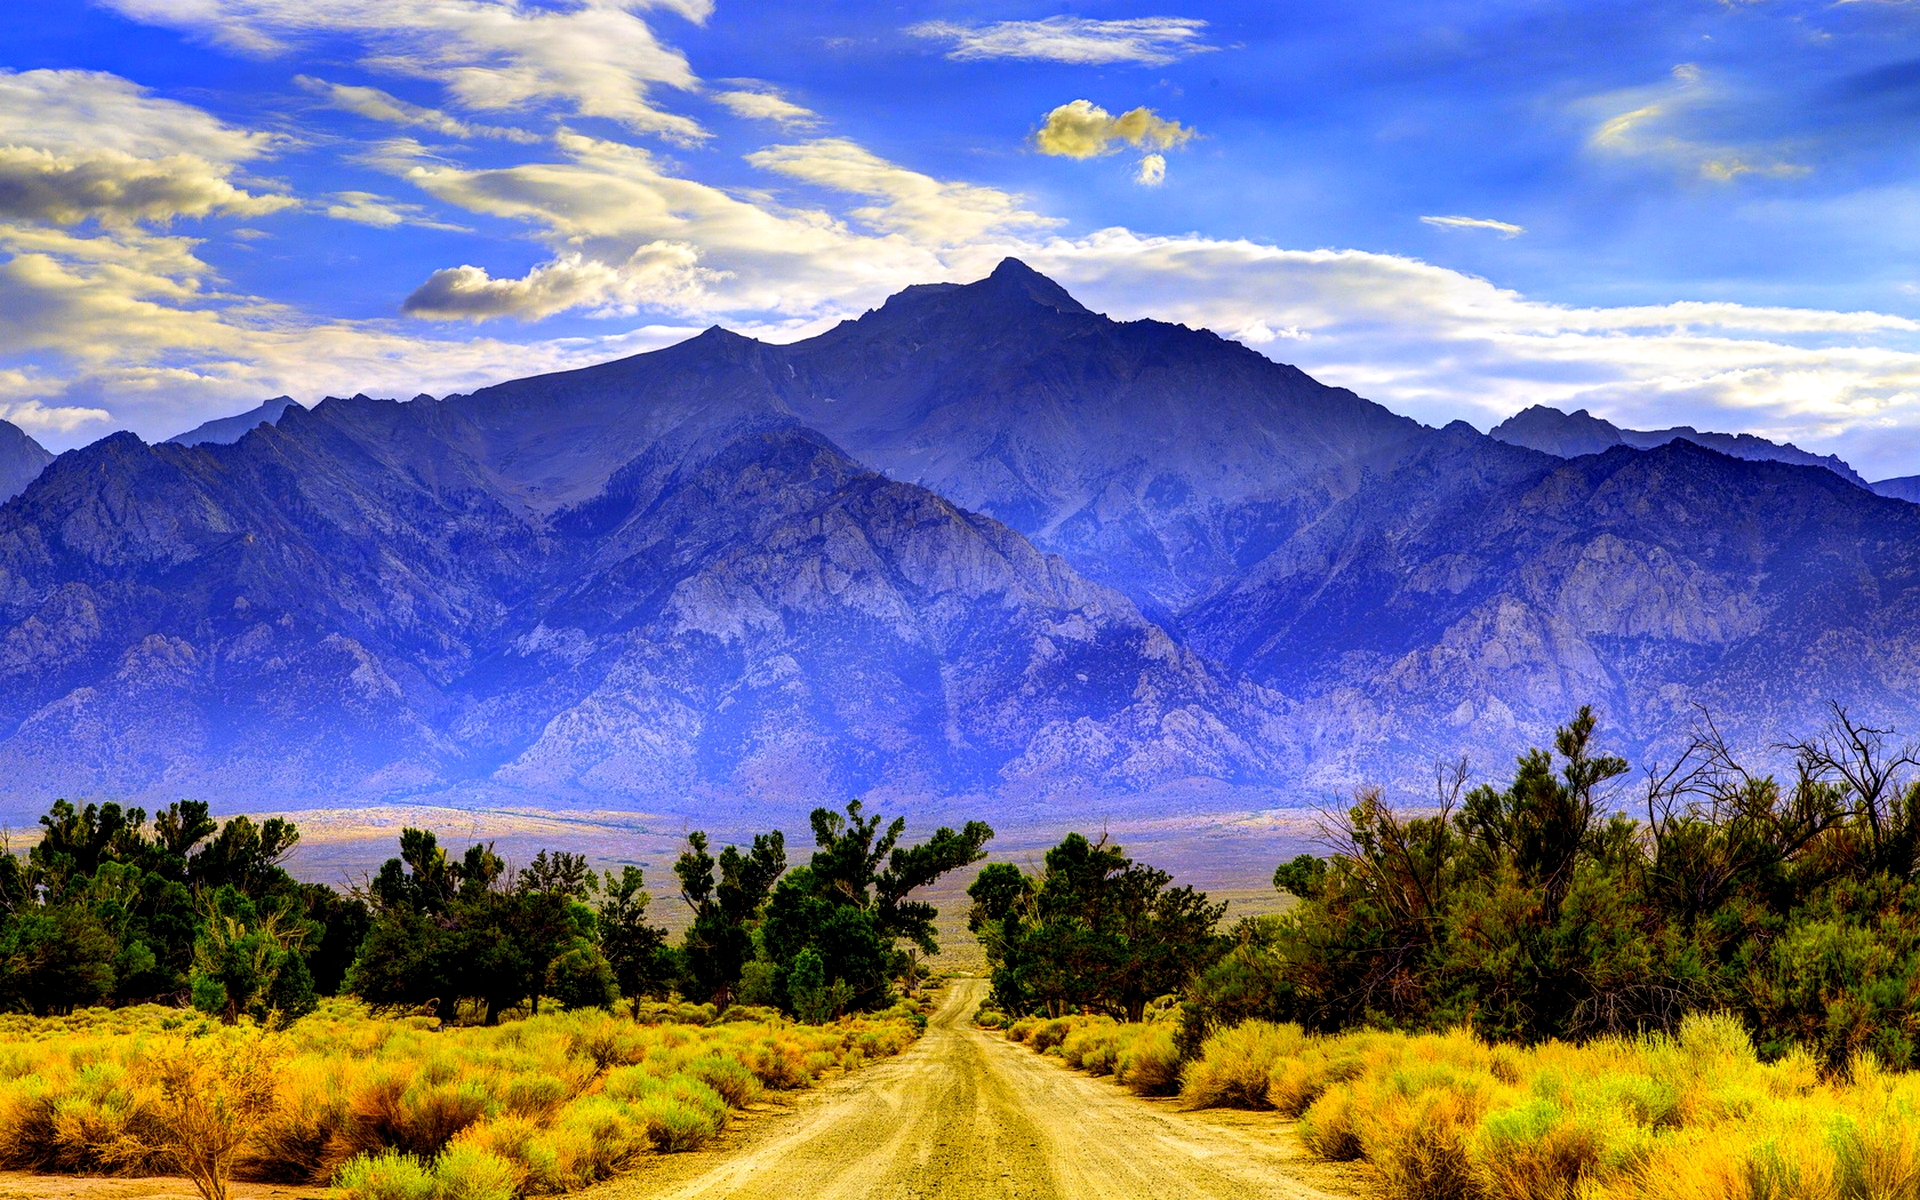 2465-Beautiful-Mountain-Road-